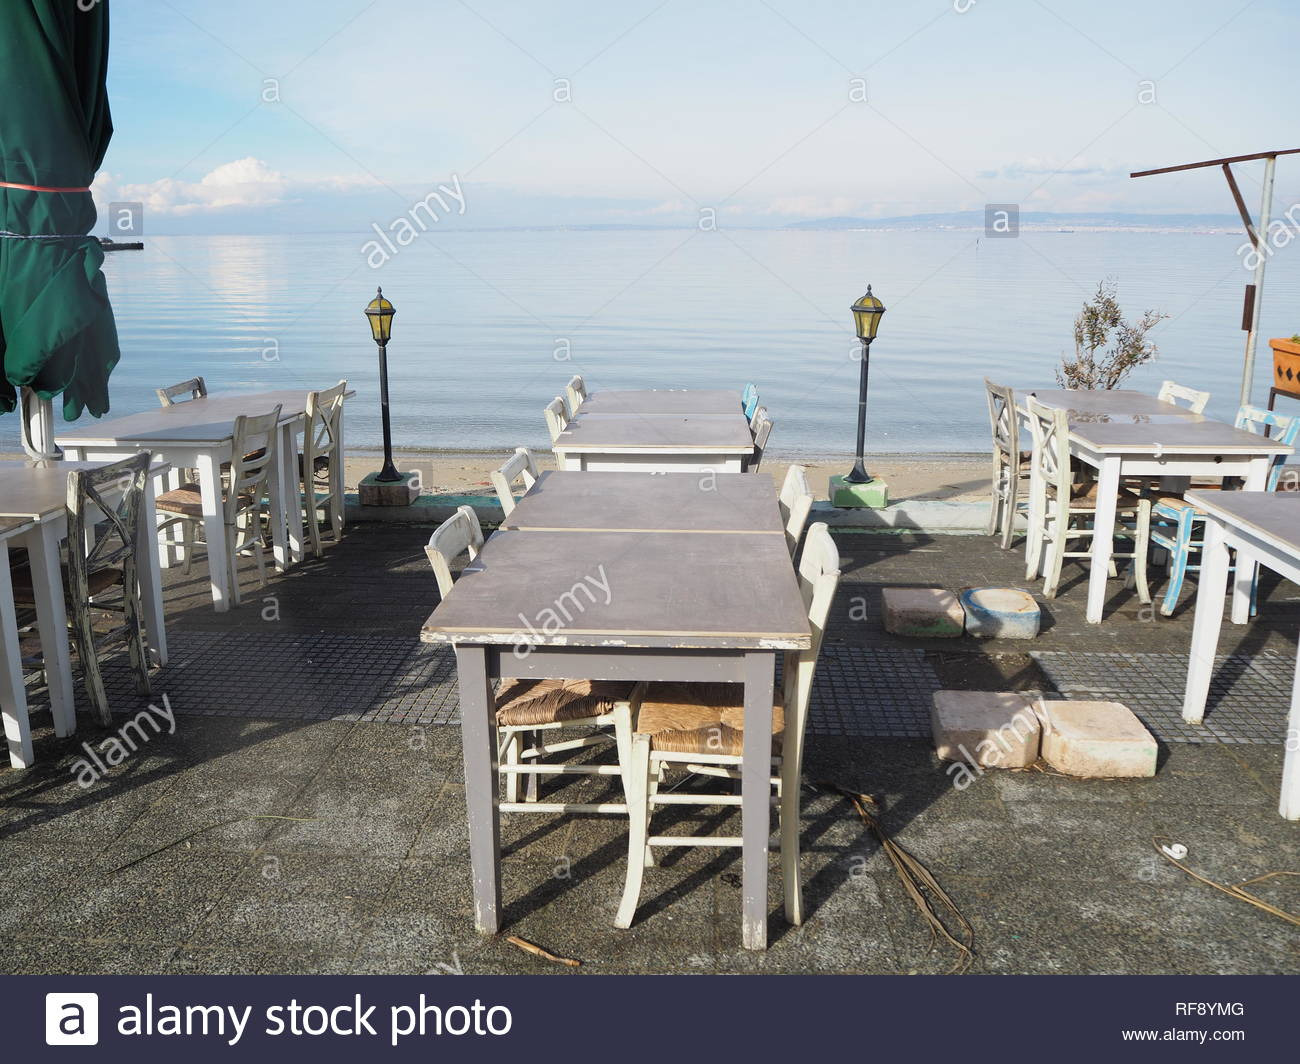 Unoccupied restaurant tables by the sea - Stock Image